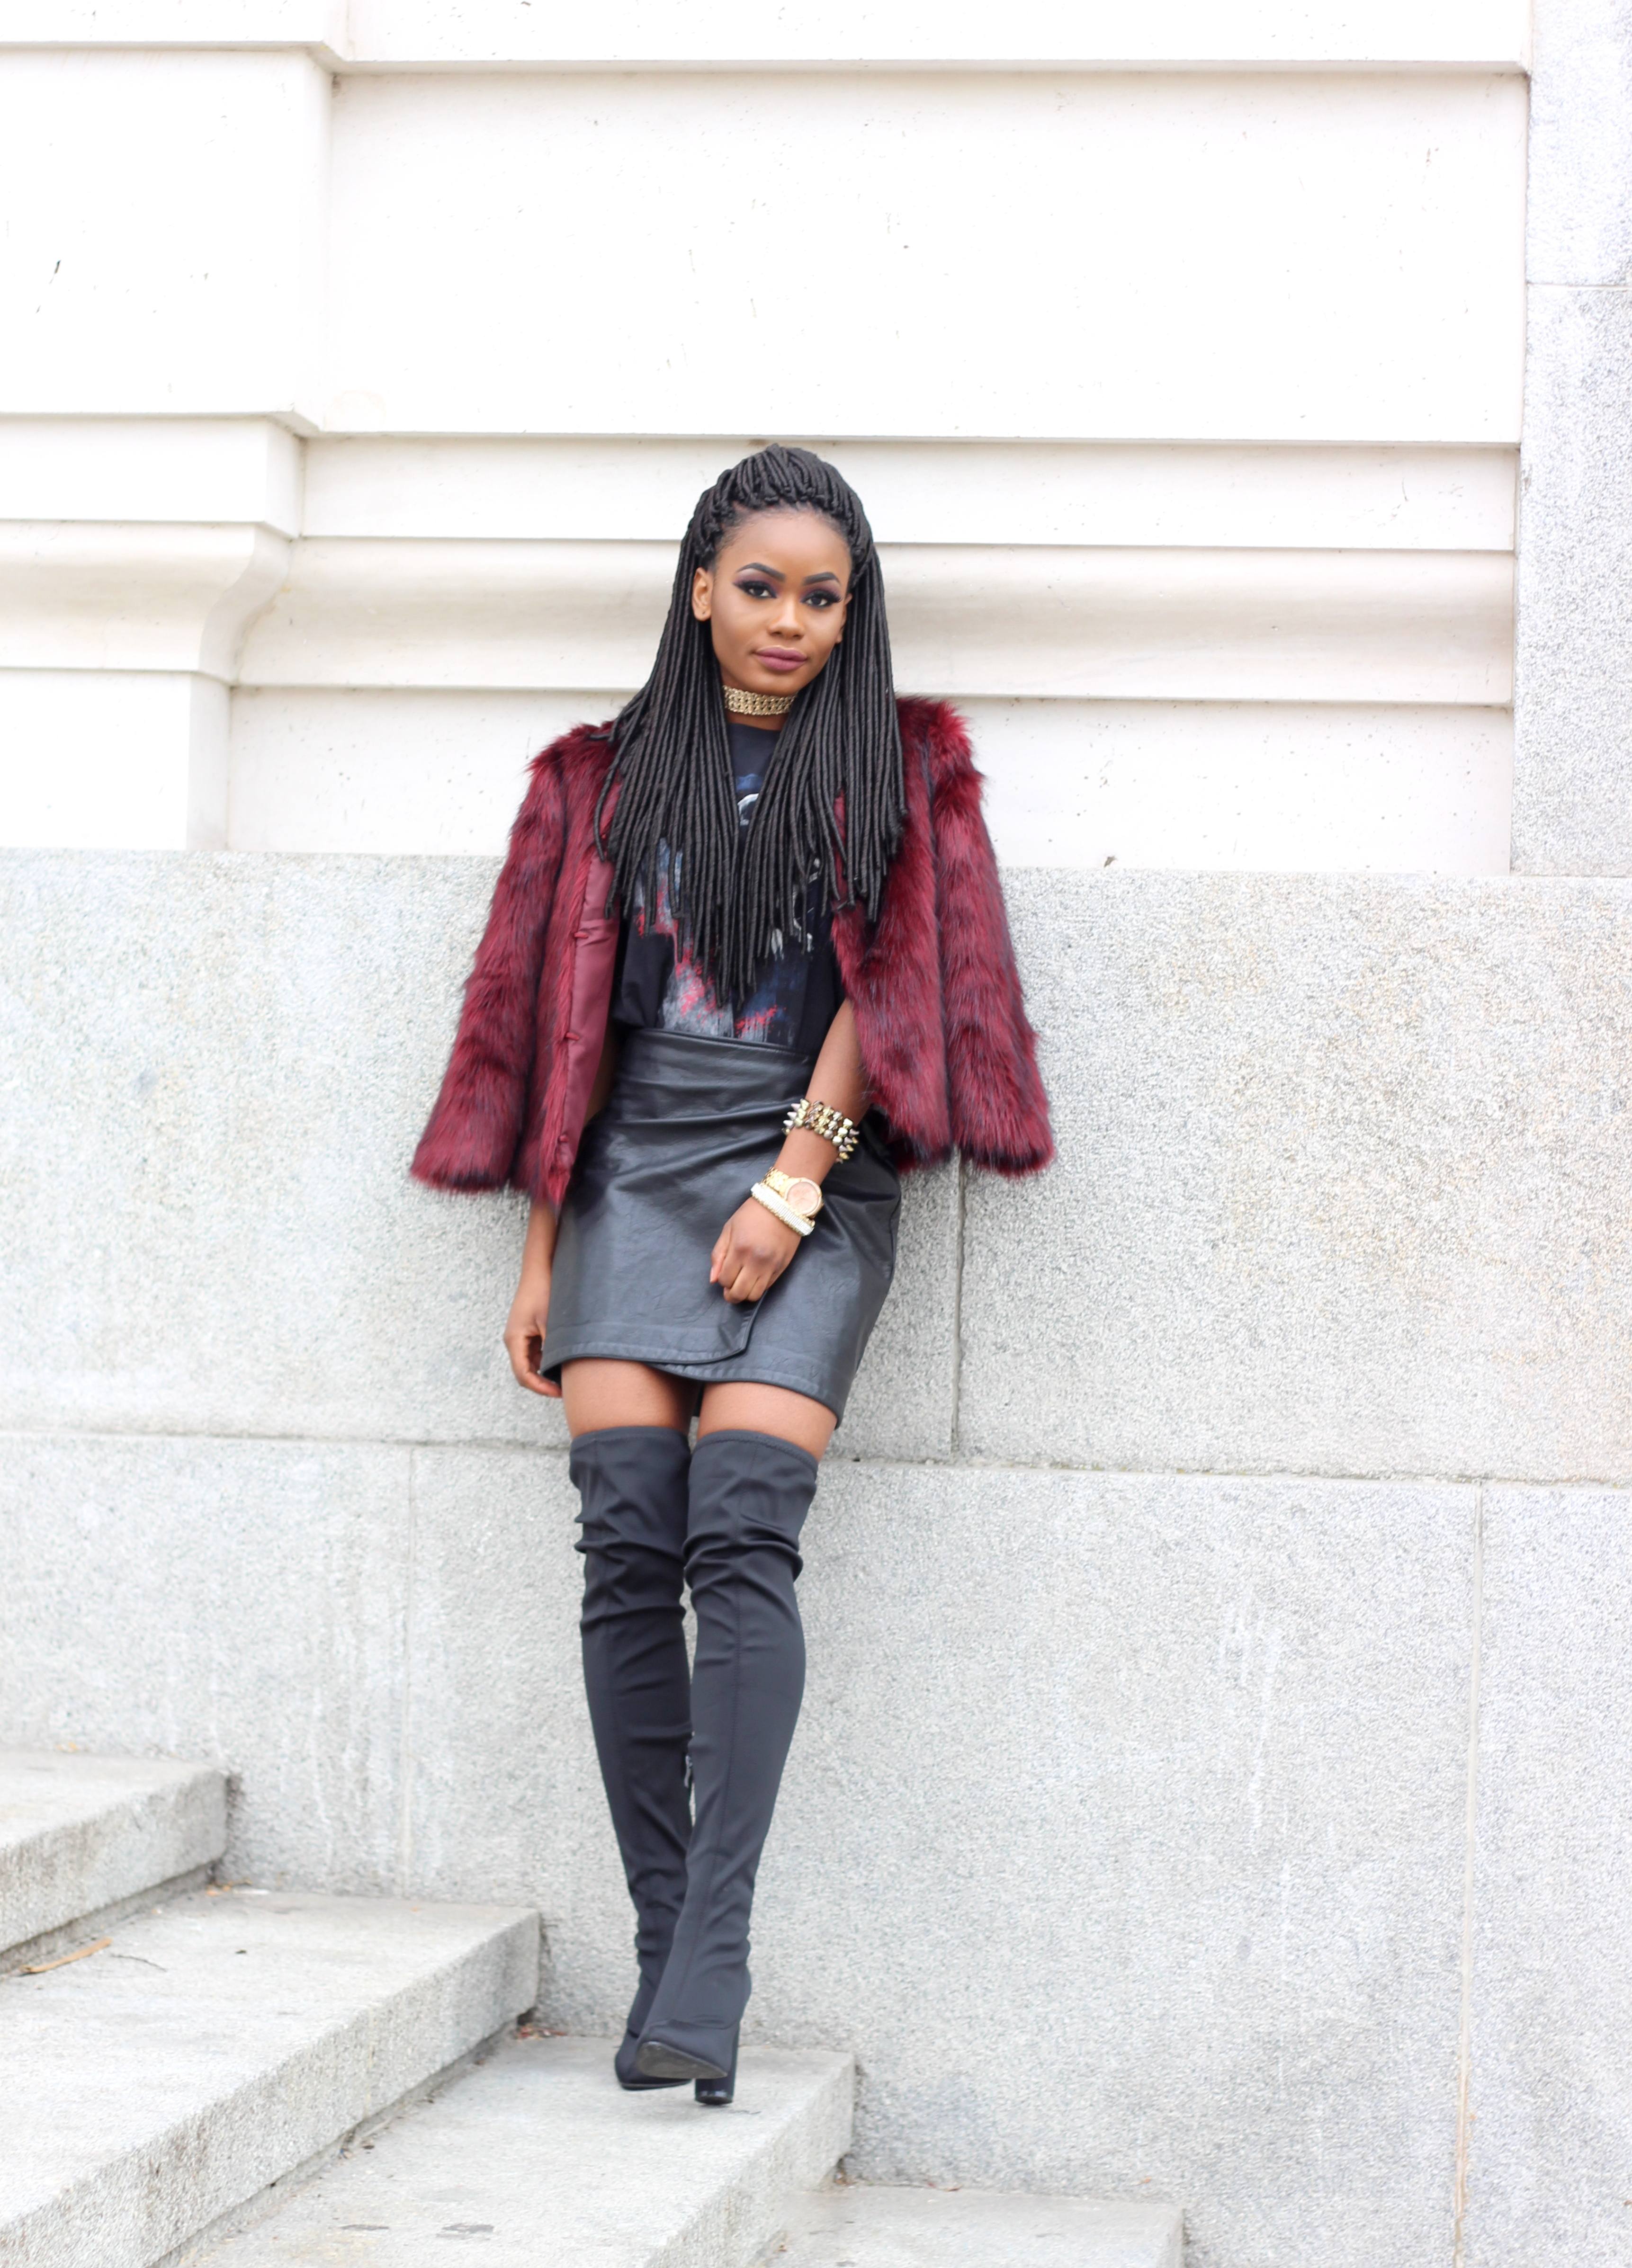 Billykiss Azeez. Your Favourite Muse. Fashion Irish Blogger. African Blogger. Street style. Stradivarius Burgundy Faux Fur Coat. Primark Printed T-shirt. Stradivarius Leather Skirt. Lasula Thigh High Boots. Winter Style. Faux Locs. JorieHair. High Fashion. A/W 16.